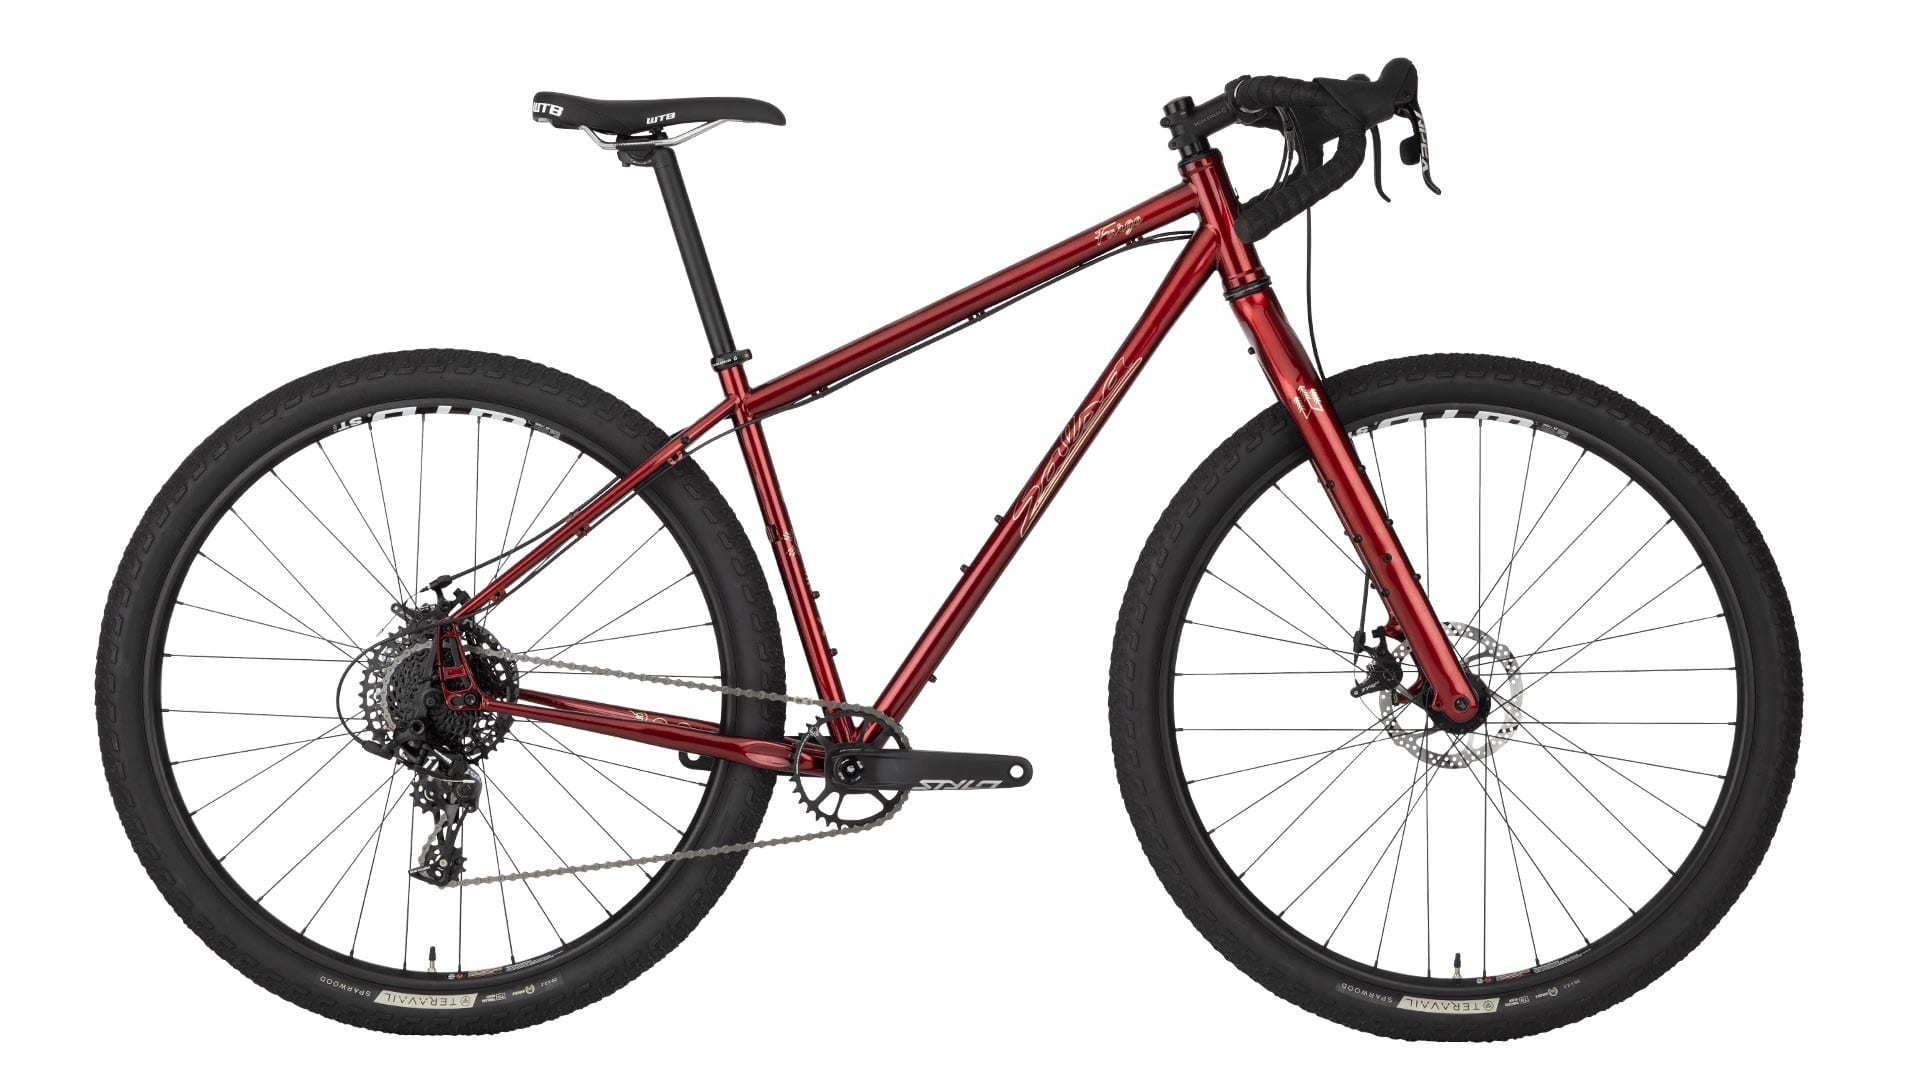 Introducing the 2020 Salsa Fargo - a First Impression Overview 41